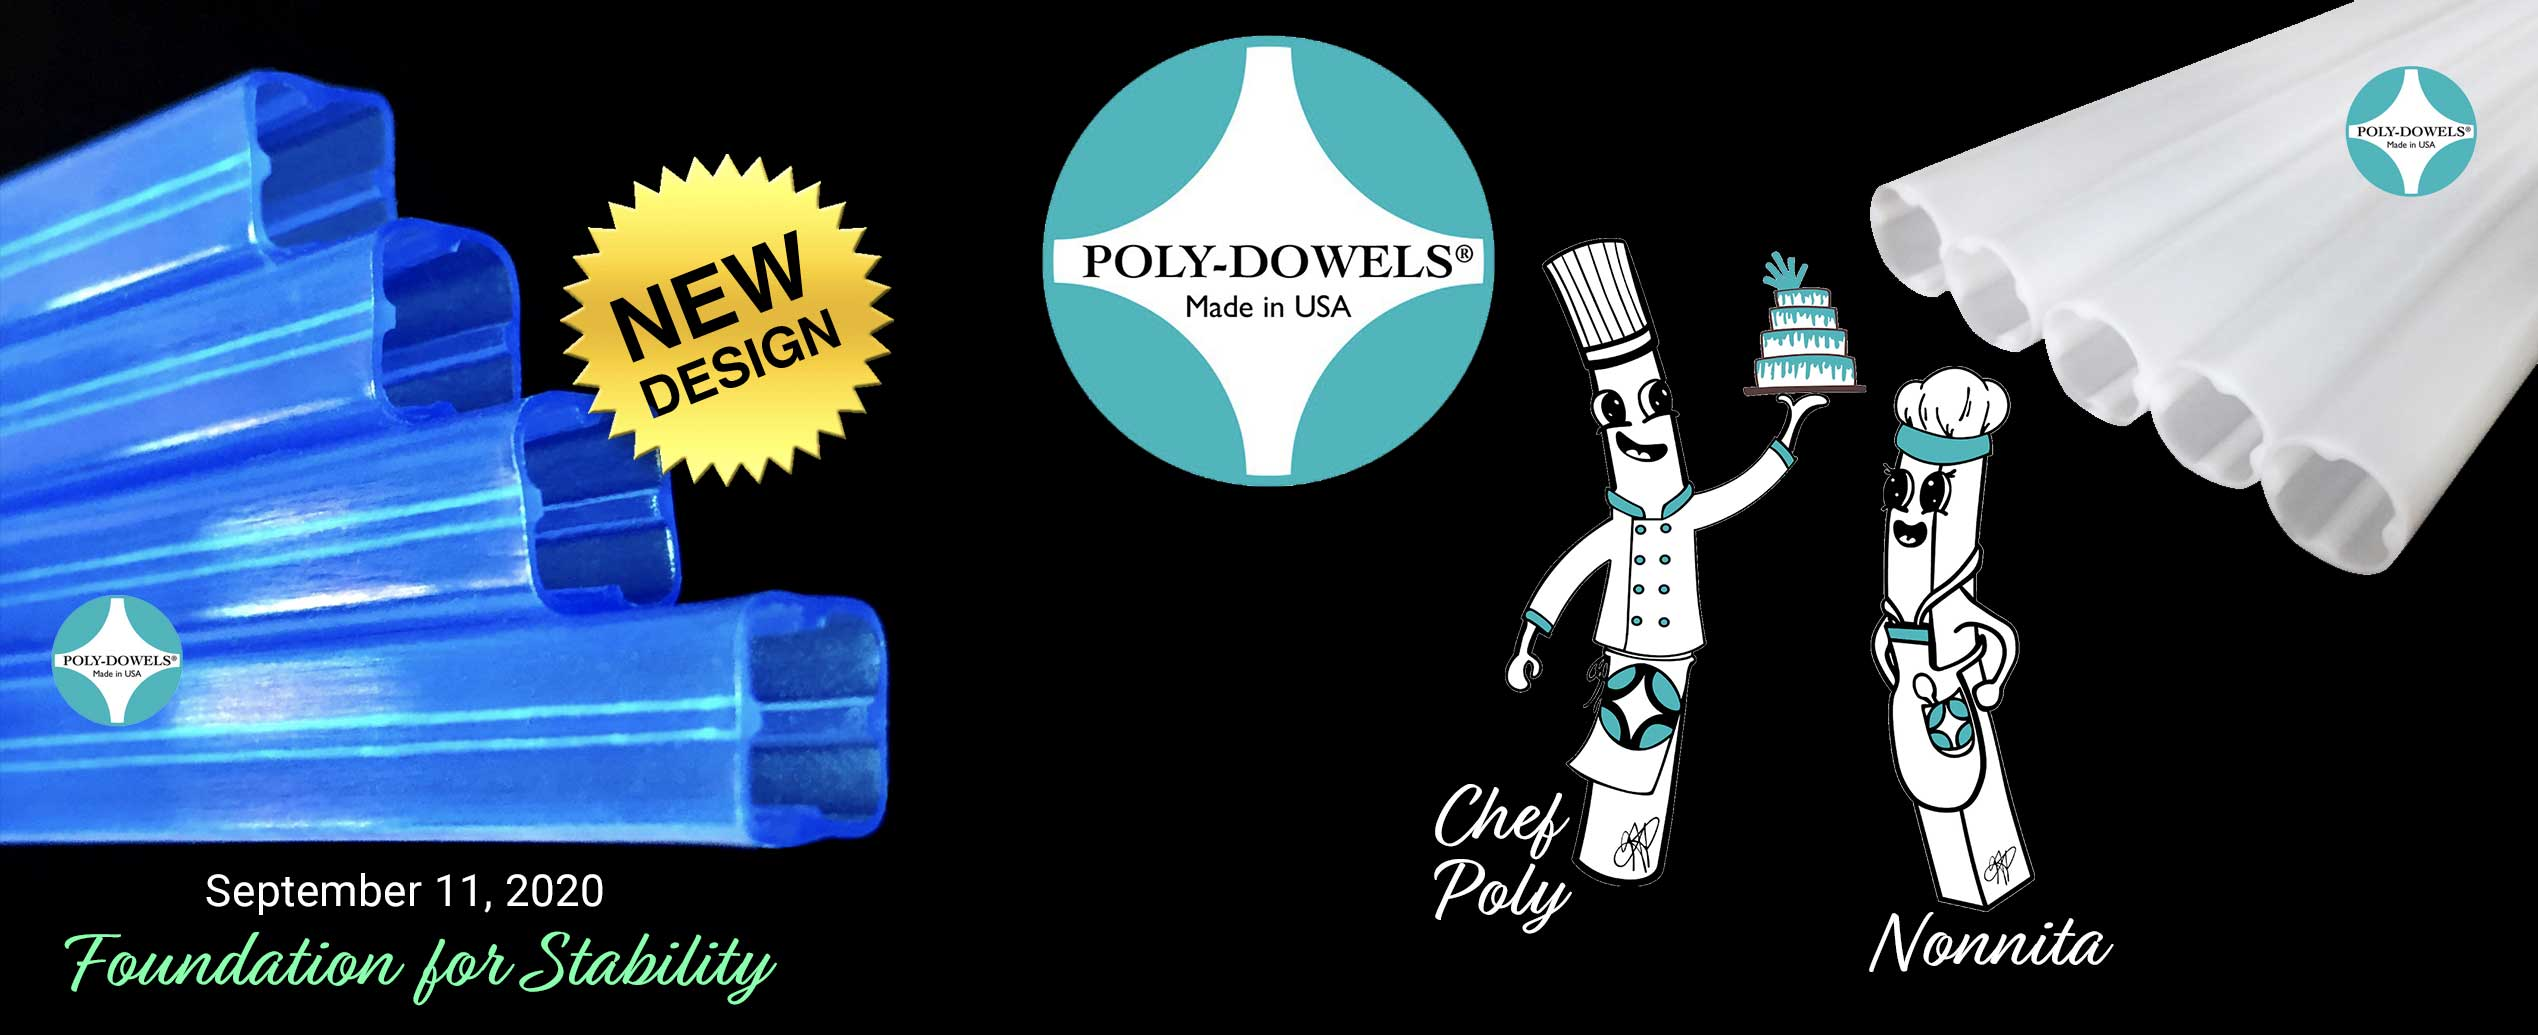 Official Poly-Dowels® Original White Plastic Cake Dowels and New Blue Square Cake Dowels made by Poly-Dowels® | Plastic Cake Dowels Made in the USA